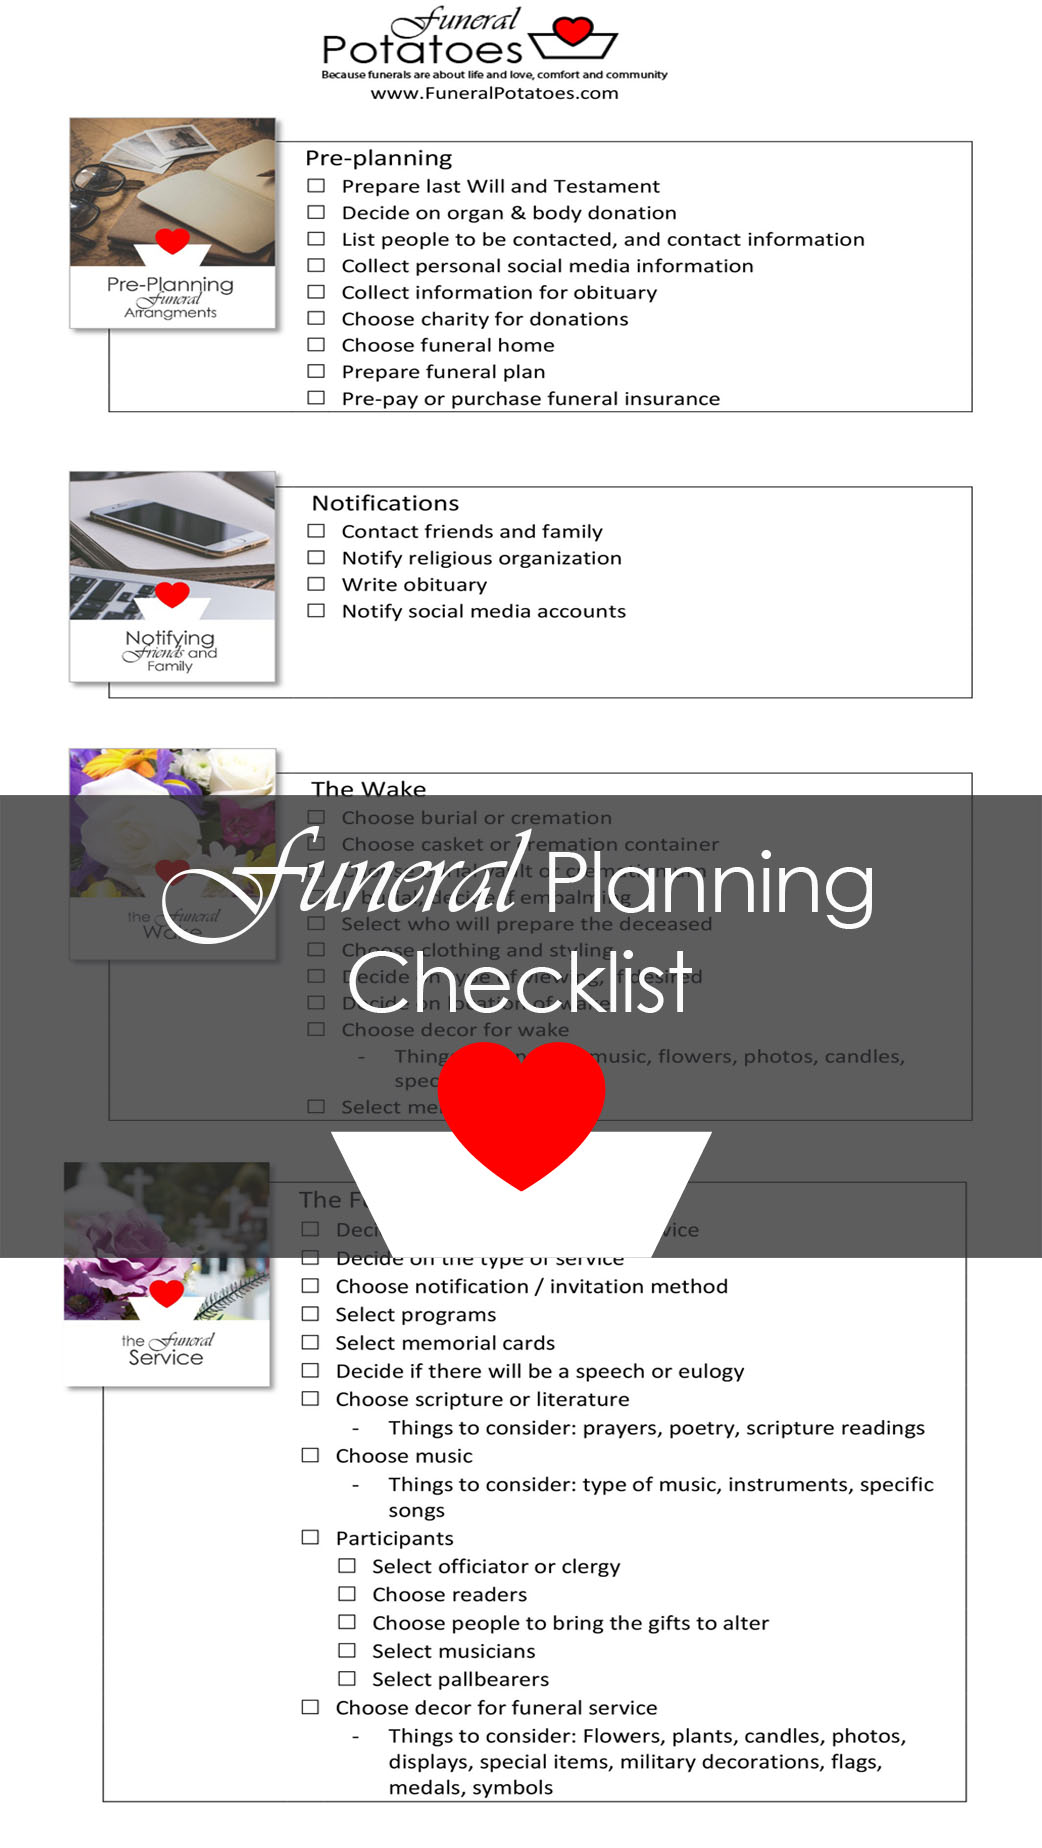 funeral planning checklist funeral potatoes